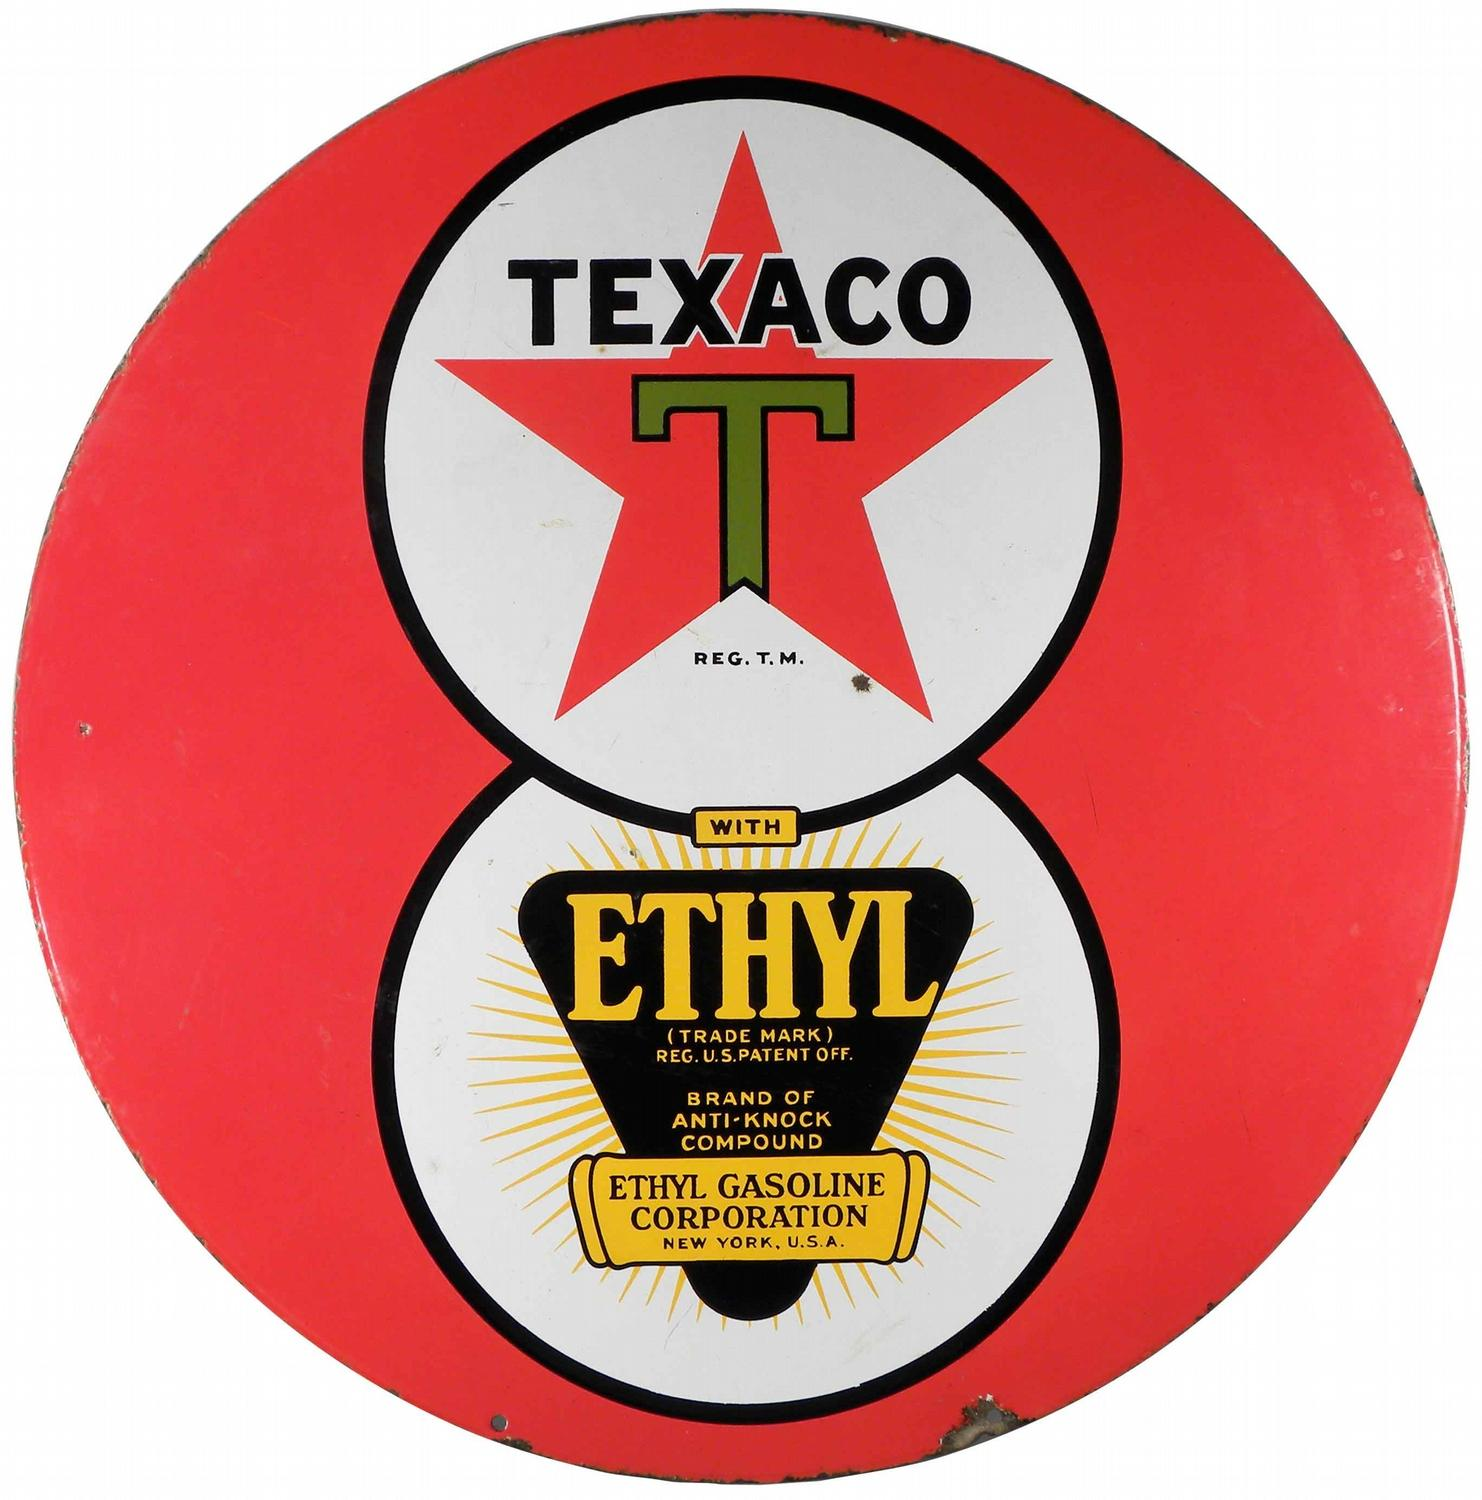 Texaco with Ethyl Two Sided Porcelain Sign